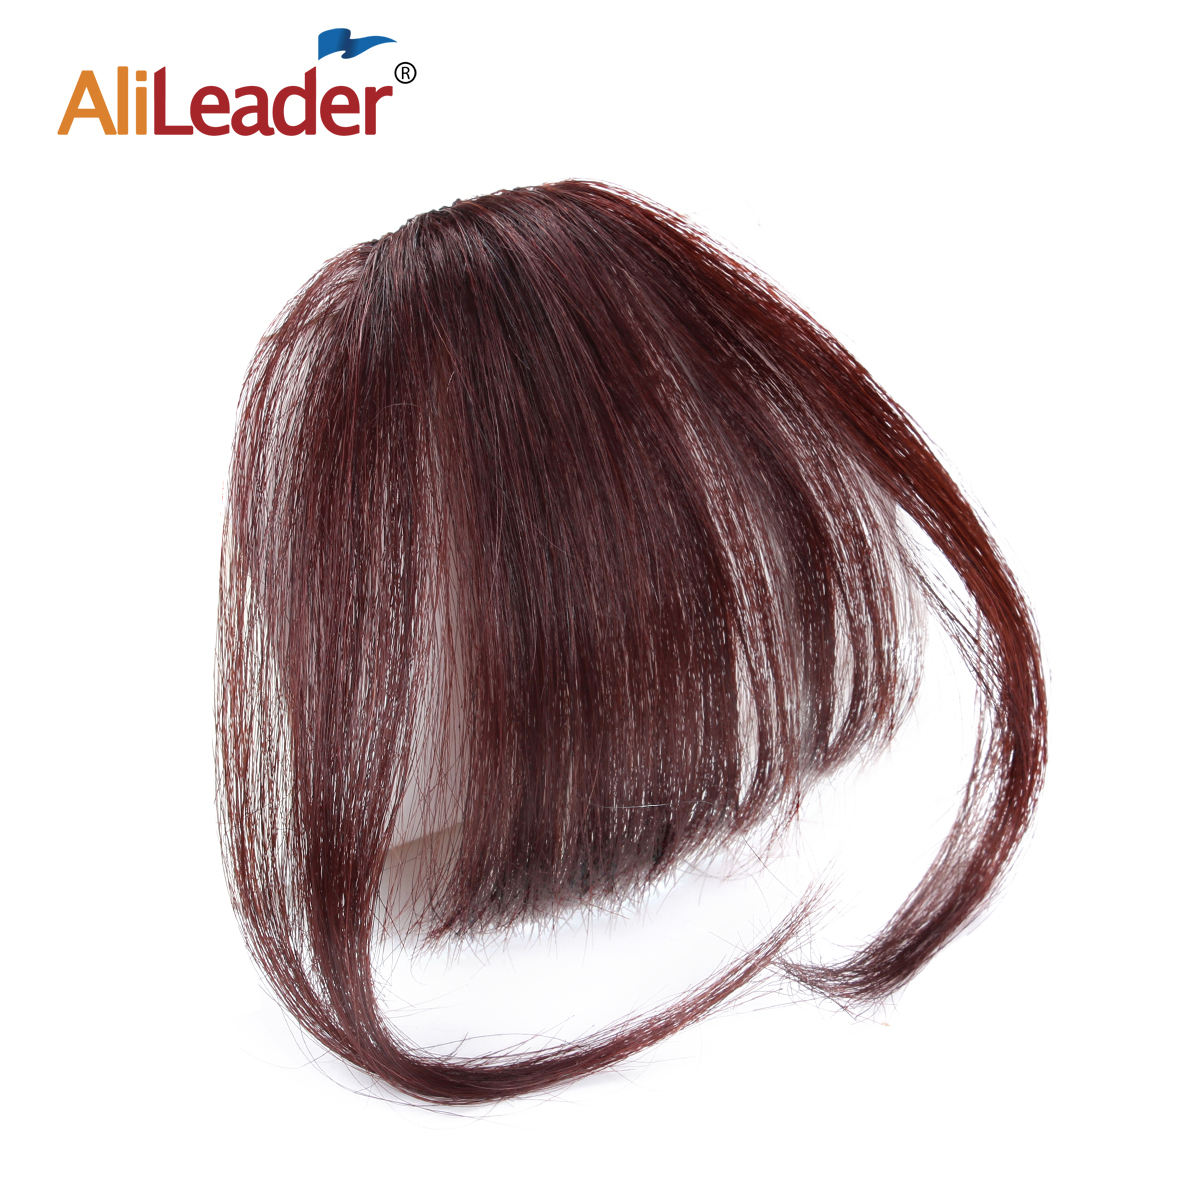 AliLeader Clip In Bangs Hand Tied Human Hair Bangs Fringe For Girls